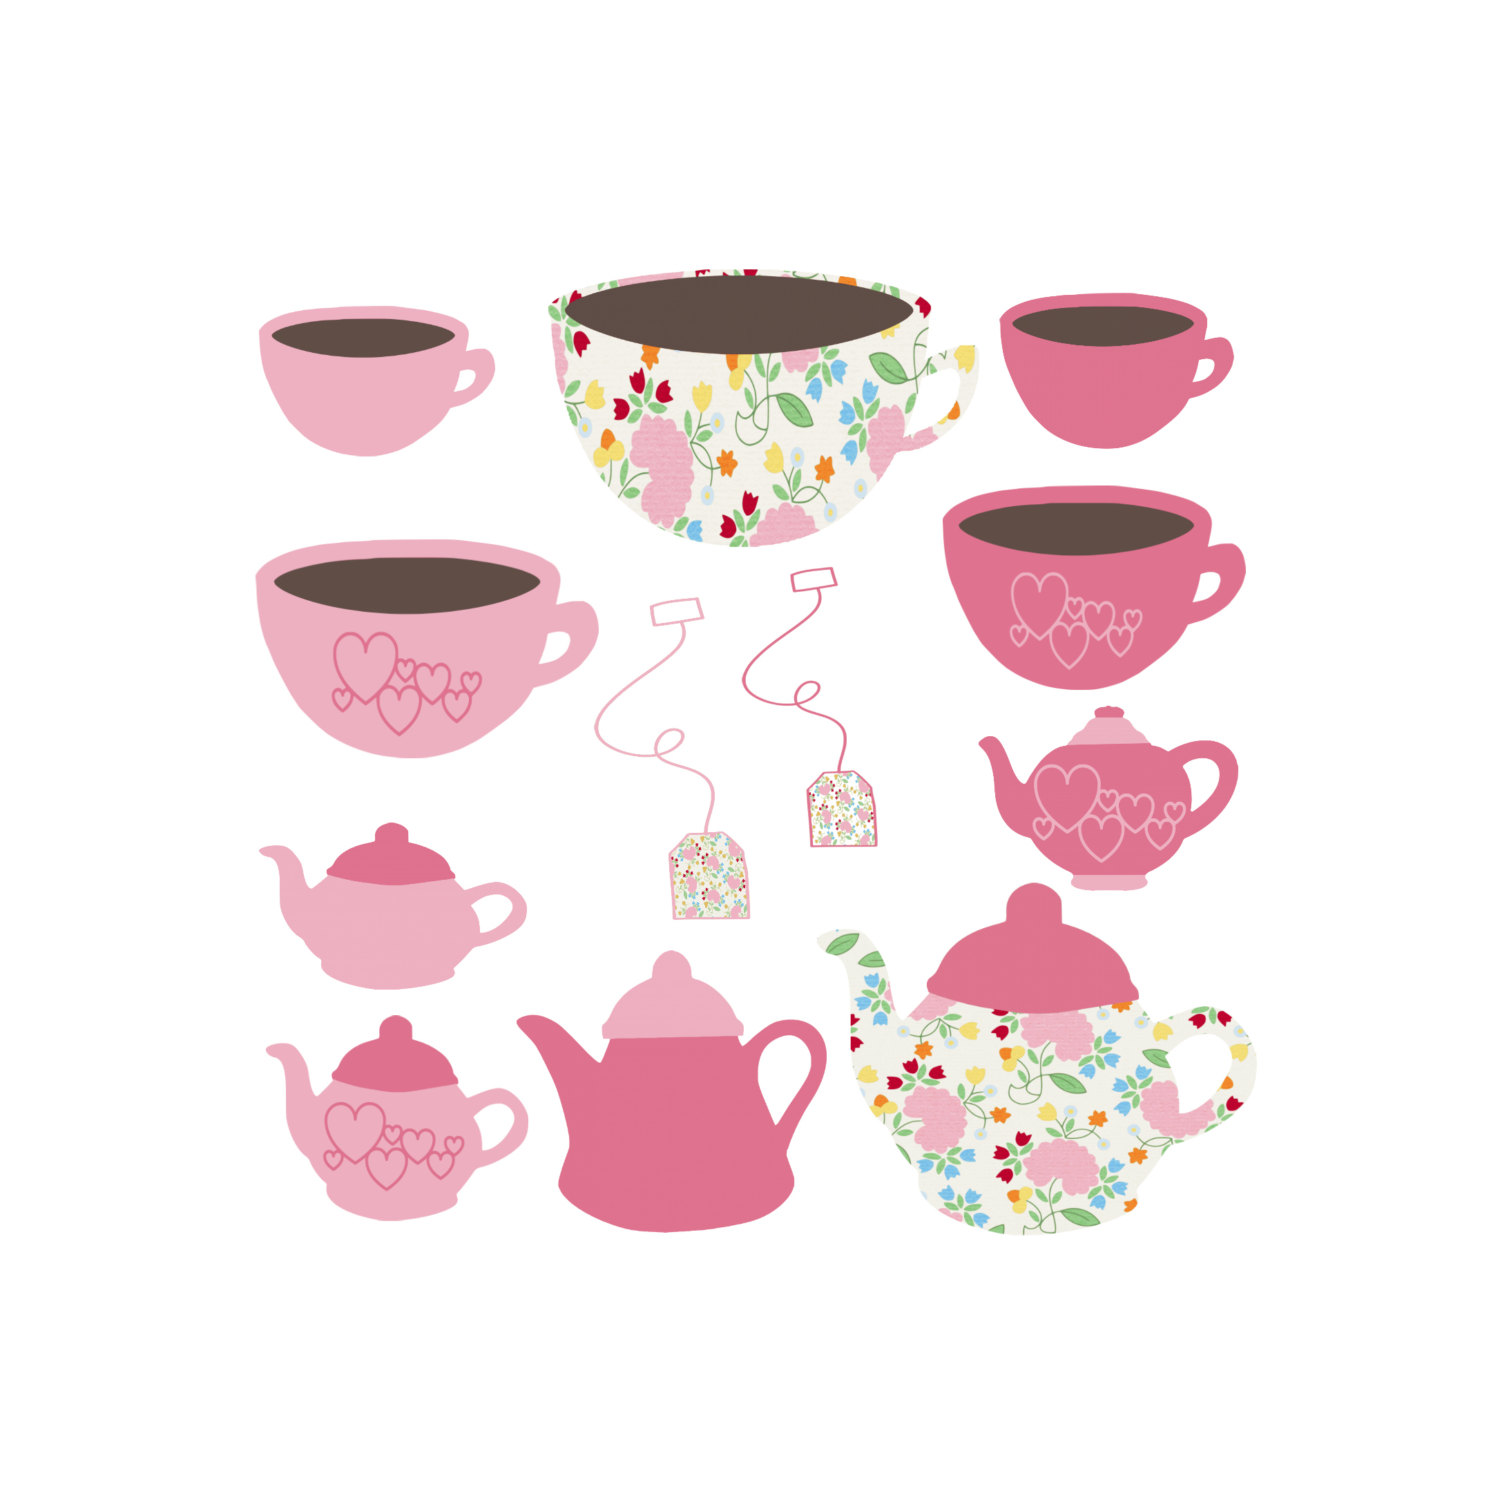 Tea cup teapot and cup set clipart